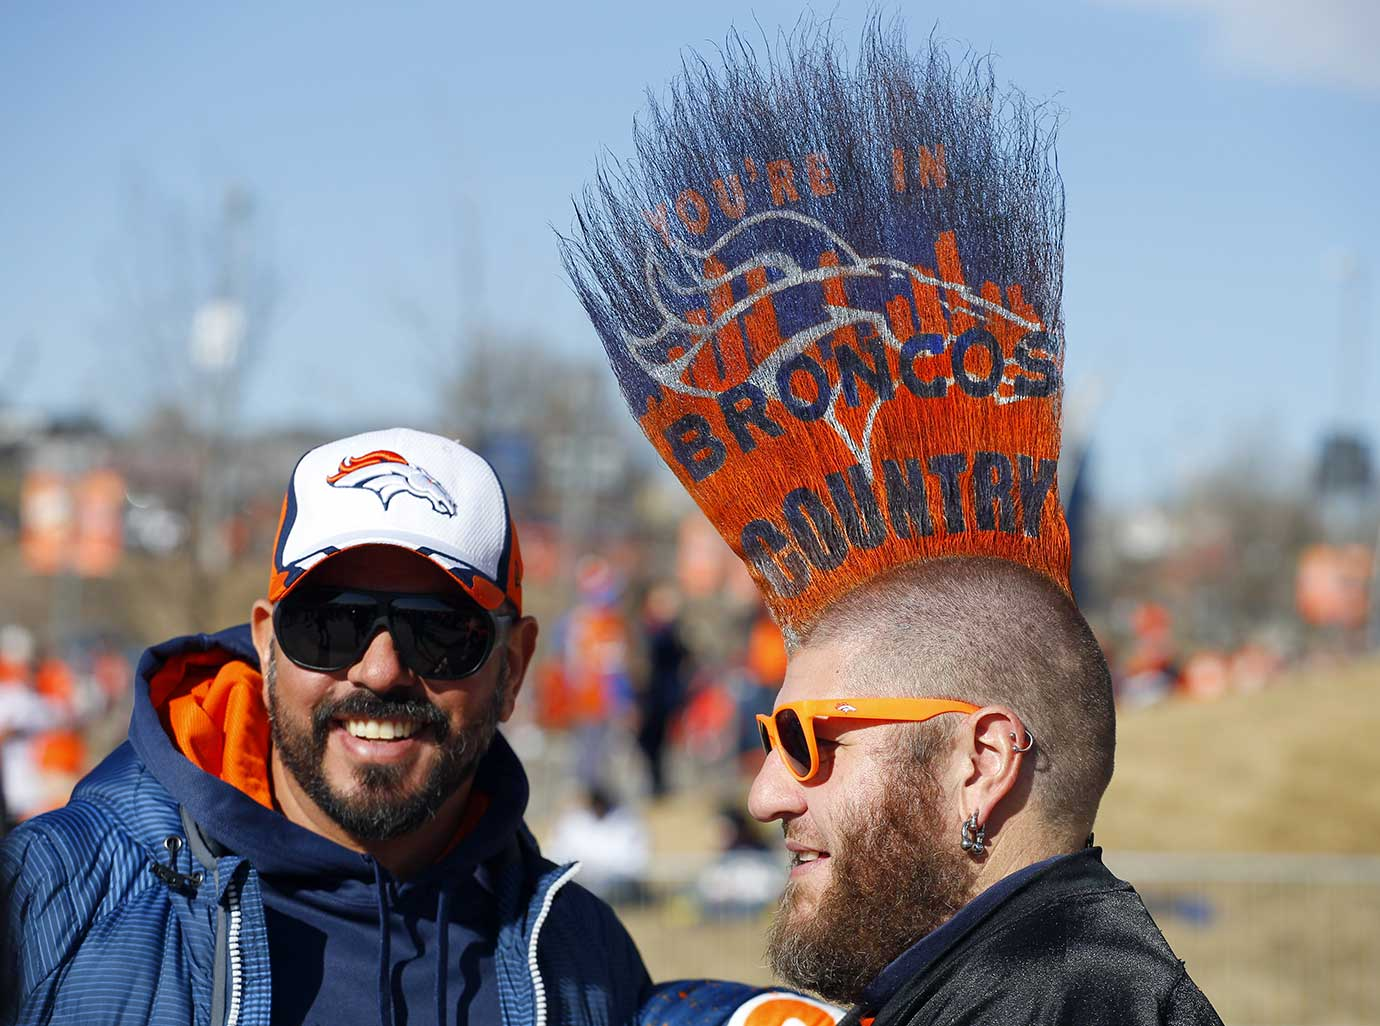 Broncos fan Joshua Pugh has his hair done in a Mohawk.